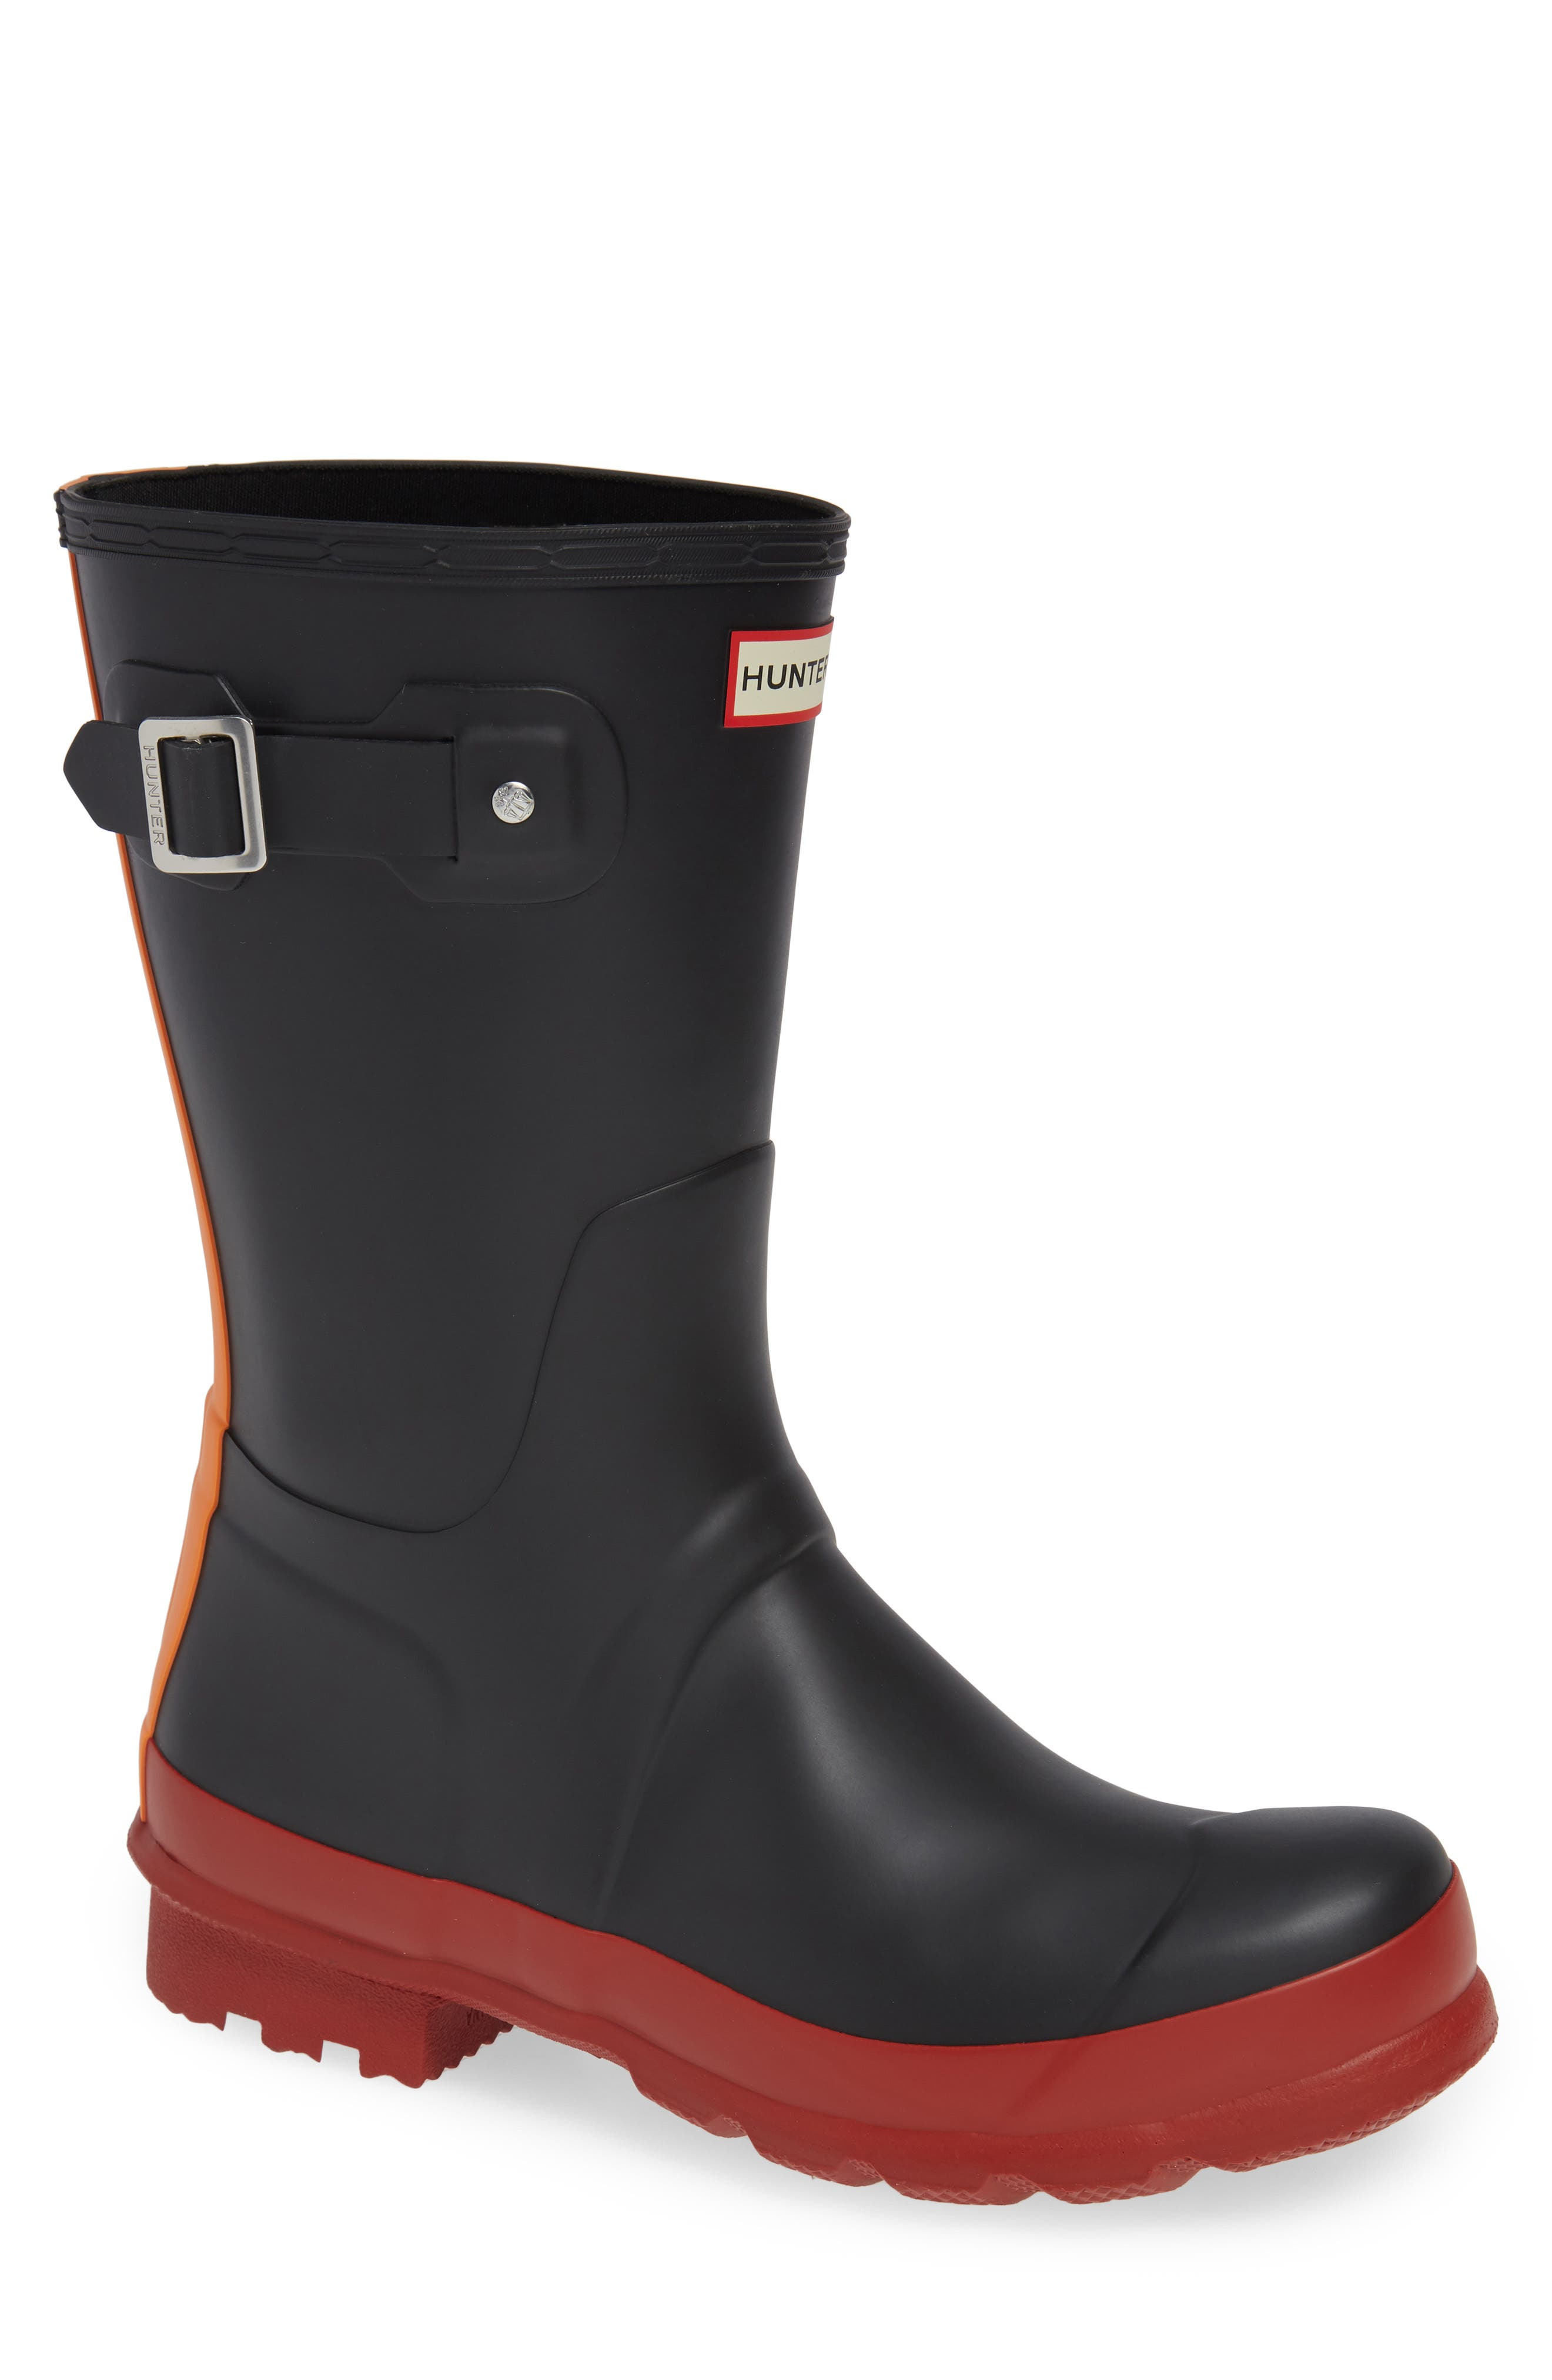 Waterproof Original Boot,                             Main thumbnail 1, color,                             BLACK/ RED COLOR BLOCK